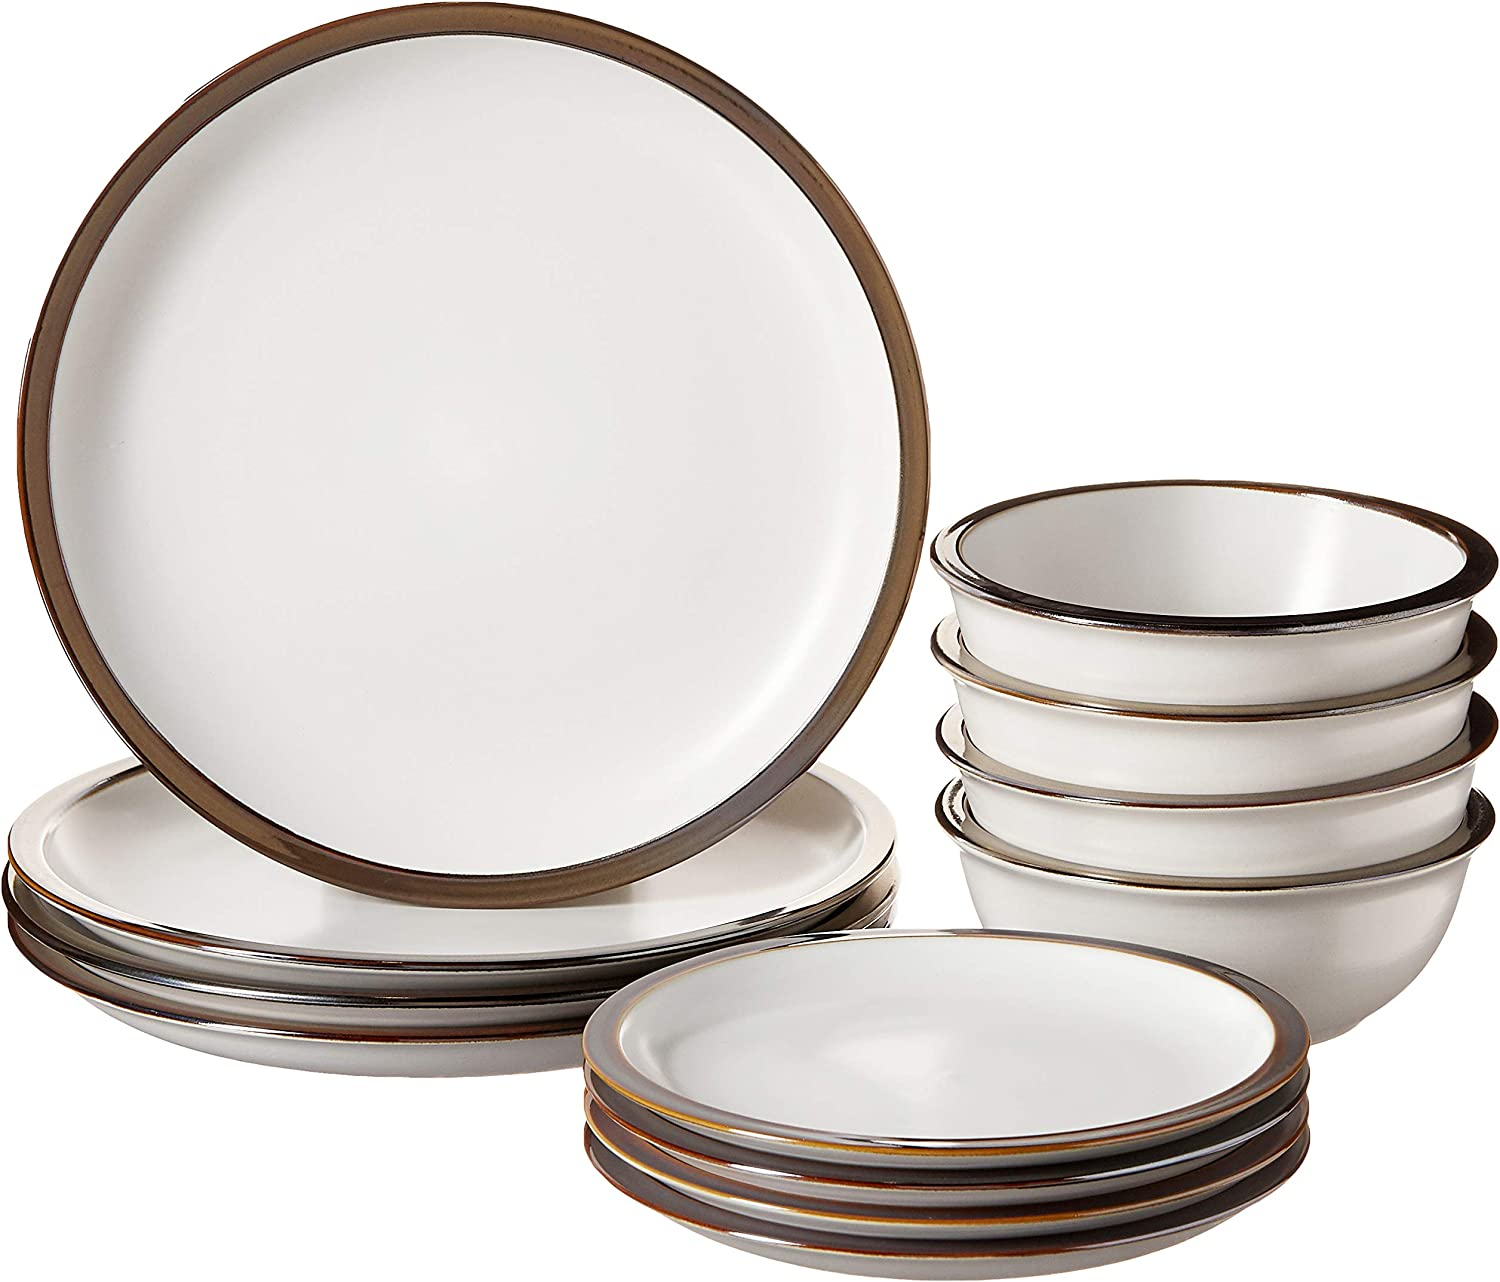 """Elle Décor Metallic Round Dinnerware Set – 12-Piece Stoneware Party Collection w/ 4 Dinner Salad Plates, & 4 Bowls –Gift Idea for Special Occasions, 10.5"""", White"""